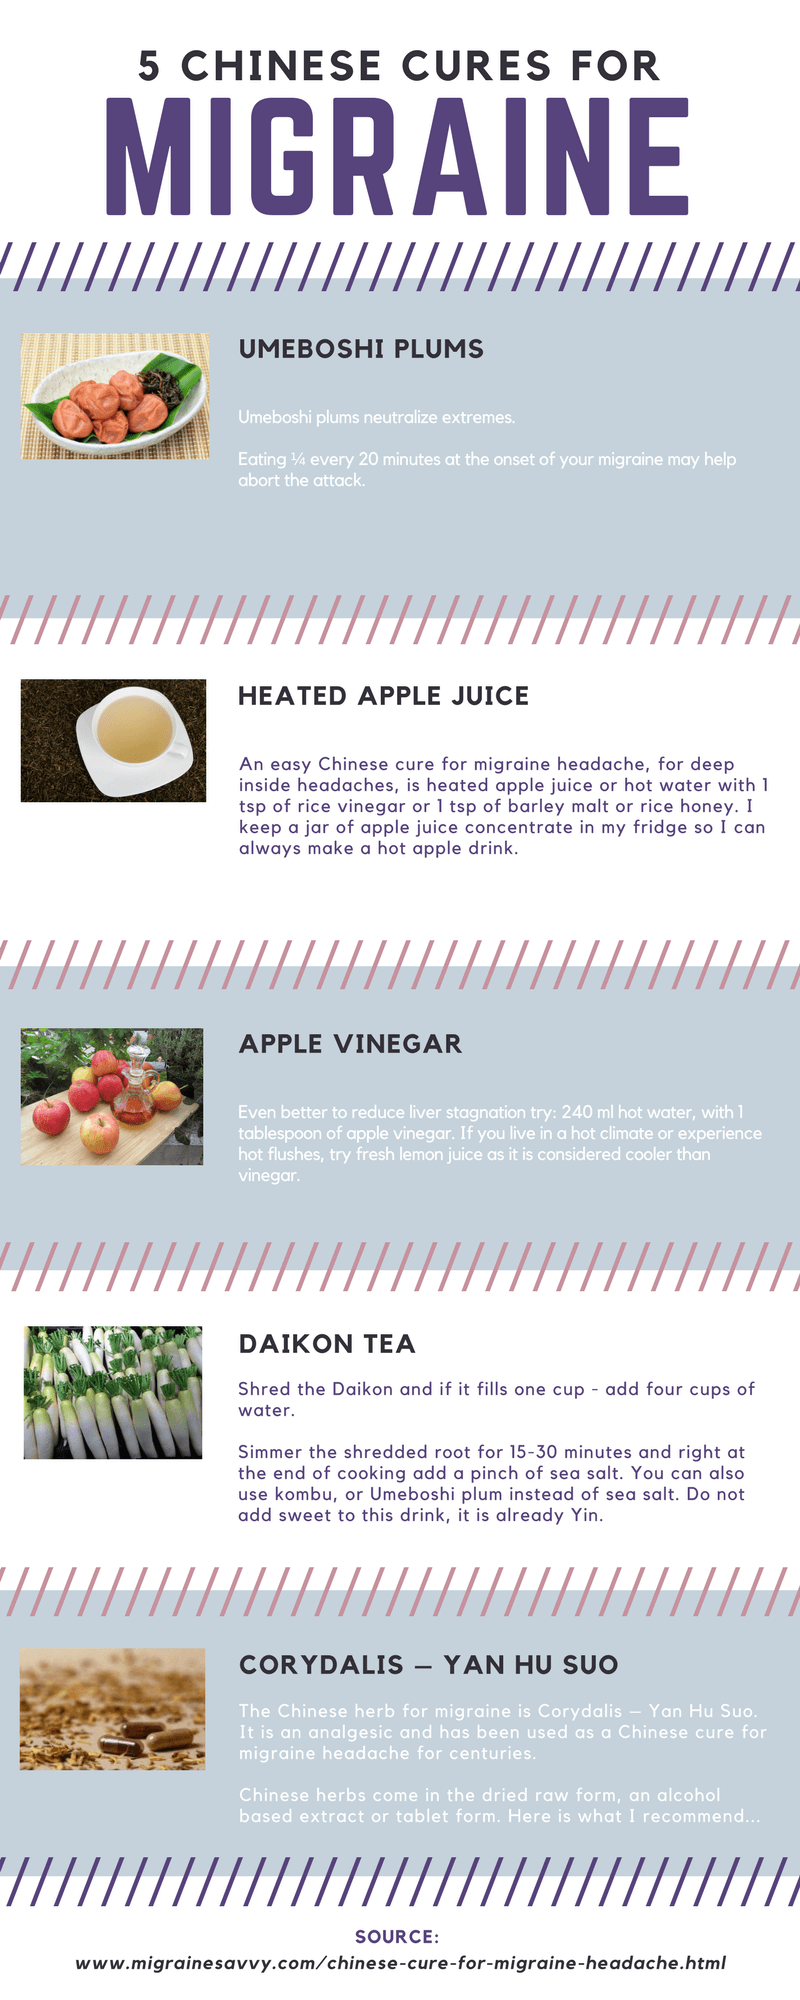 Chinese cures for migraines